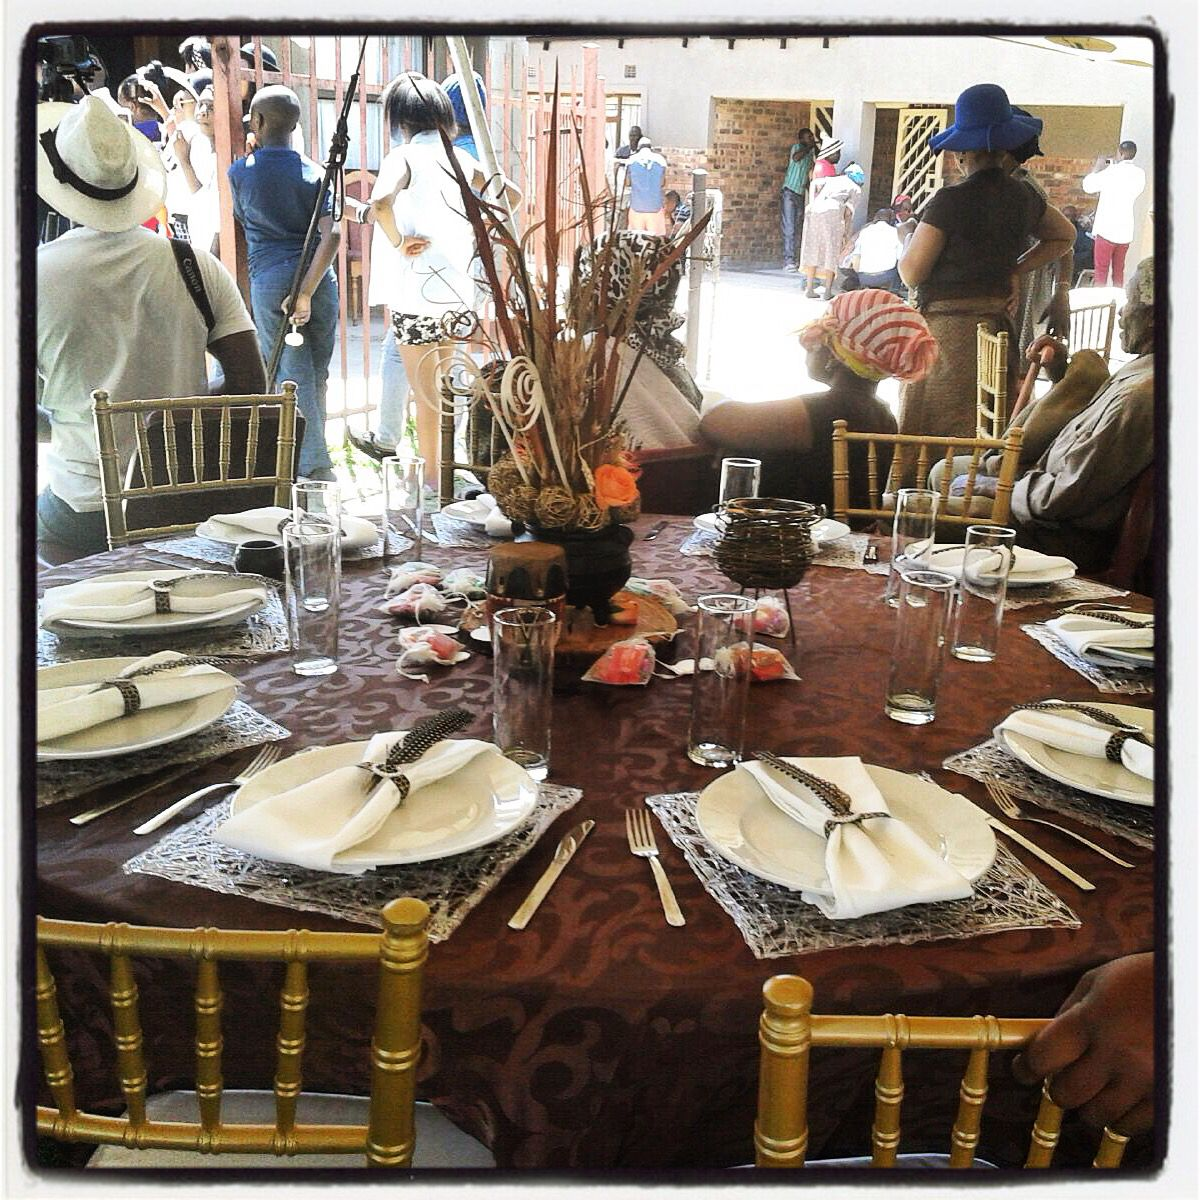 Traditional african wedding centerpieces and decor facebook traditional african wedding centerpieces and decor facebookjoburgtents or secundatentsevents junglespirit Image collections